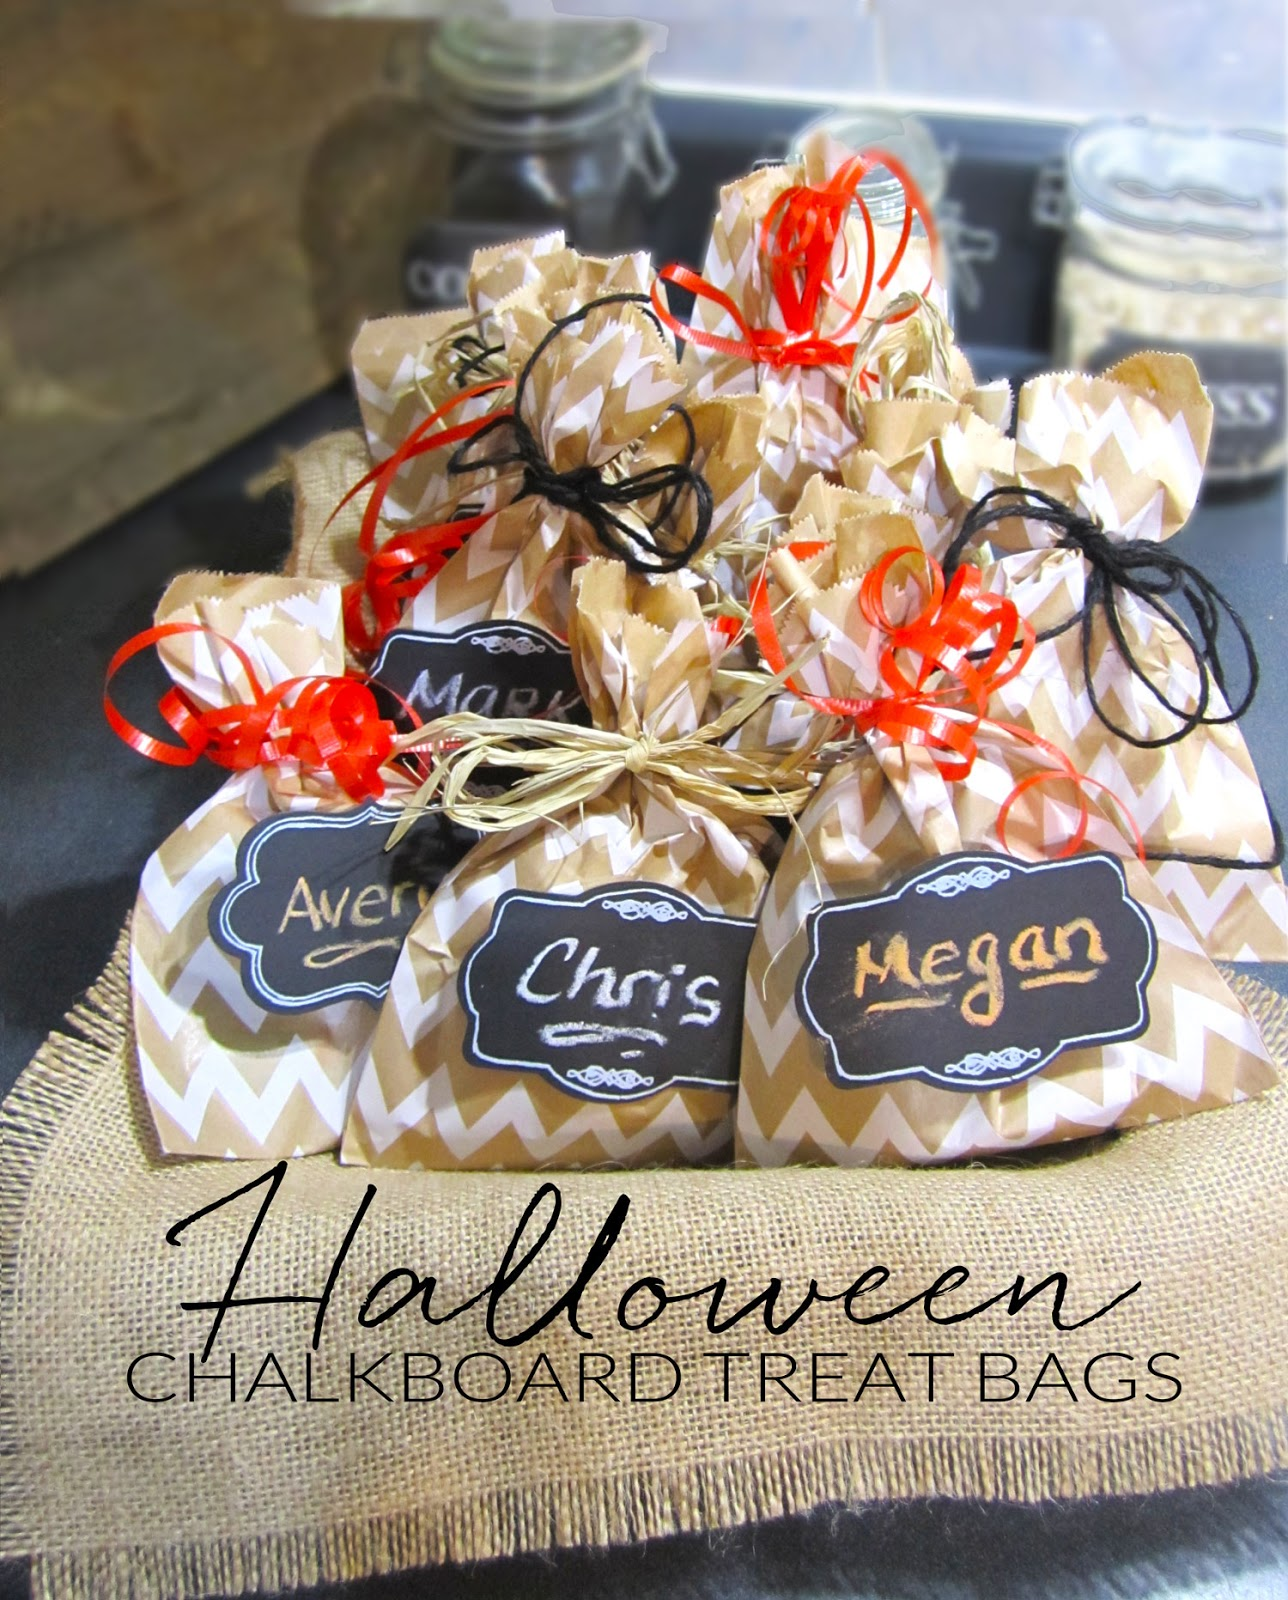 DIY crafts chalkboard halloween gift treat bags